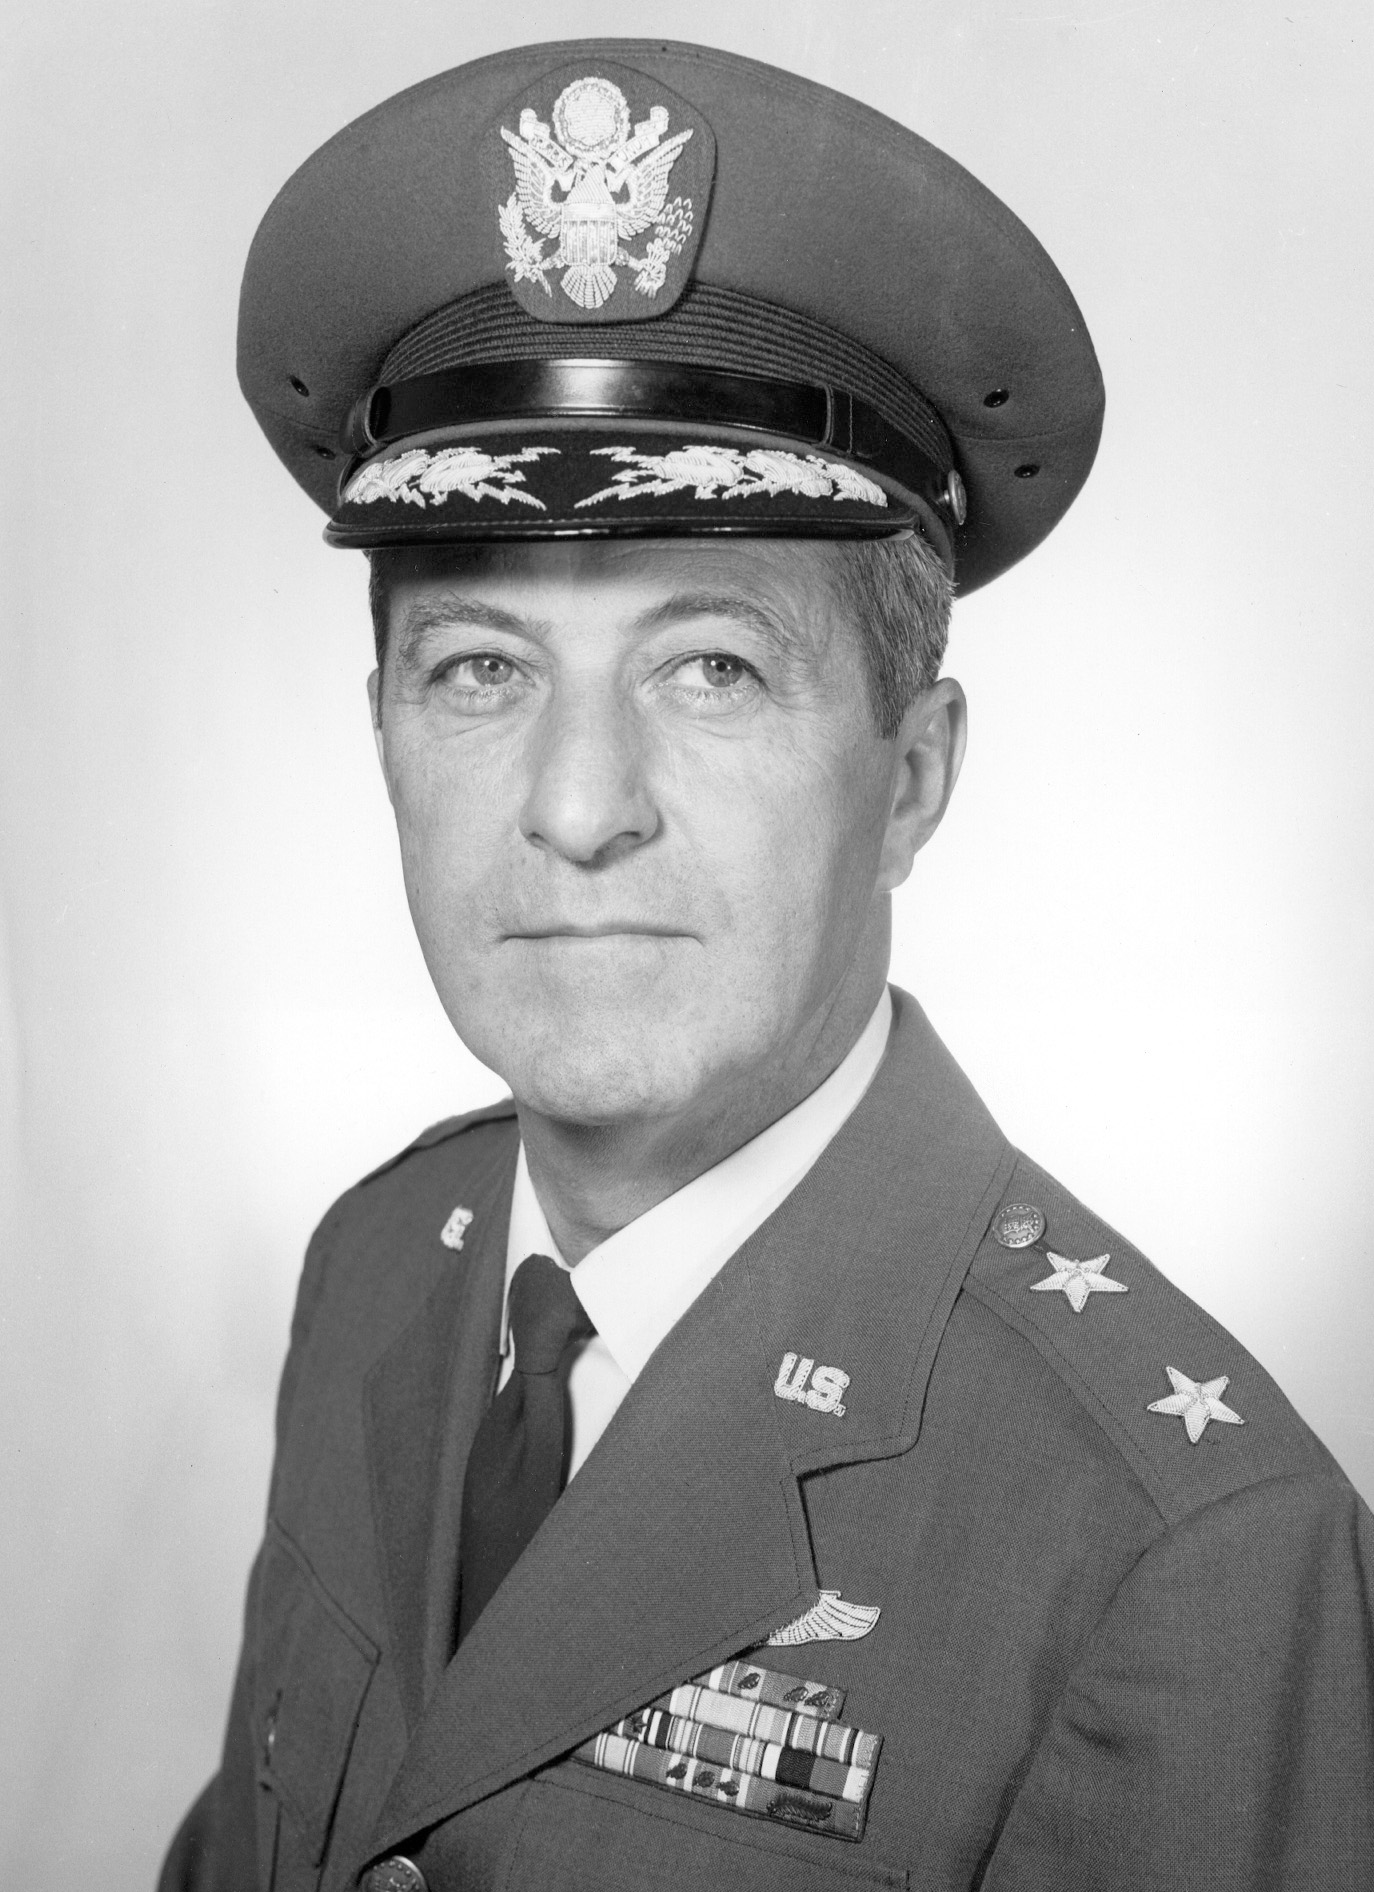 Major General Fred J Ascani U S Air Force Biography Display